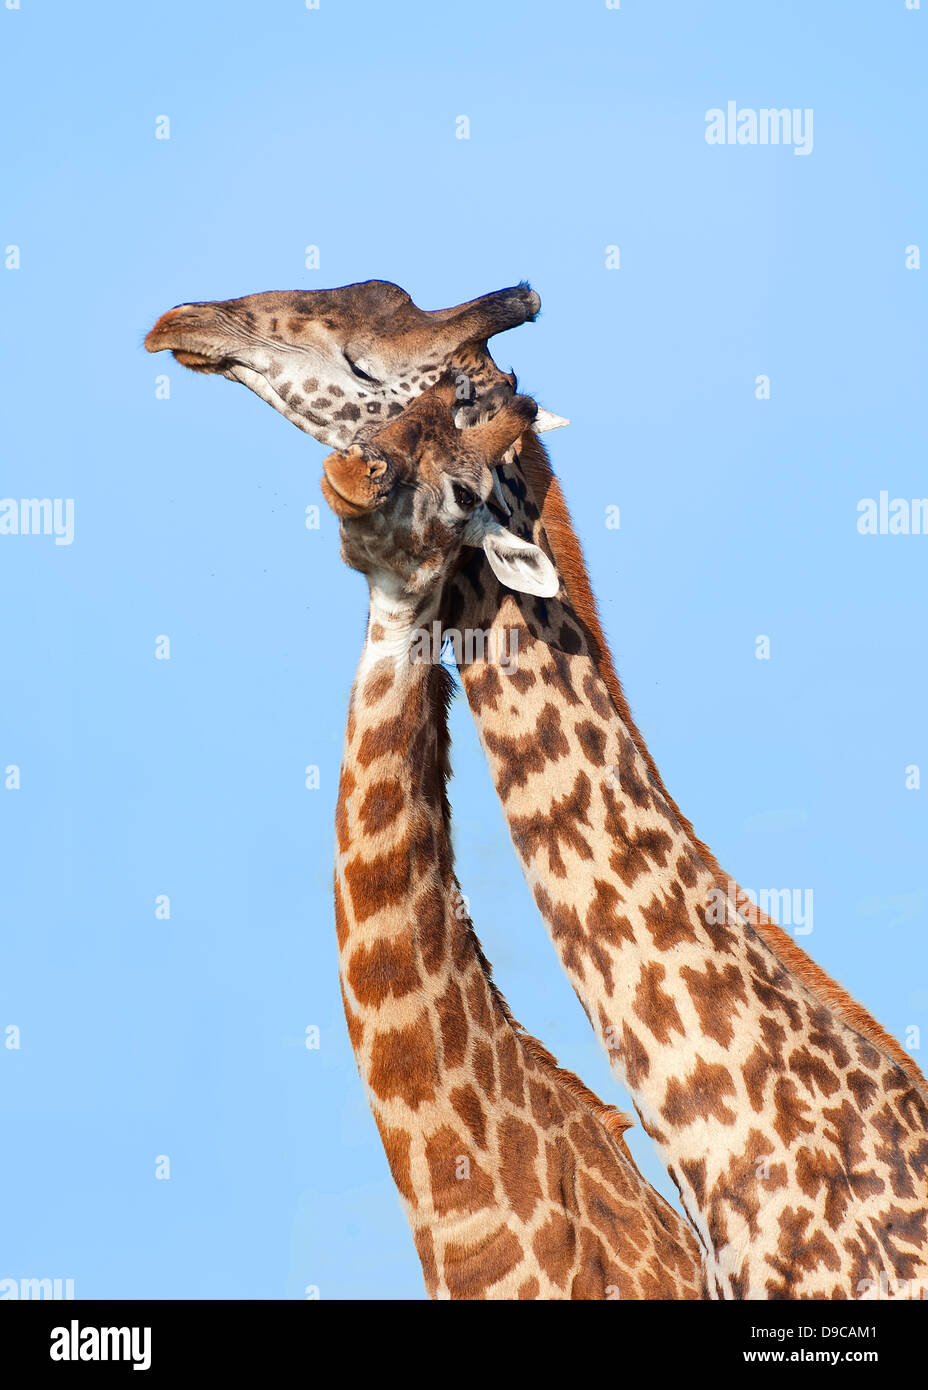 Giraffe close-up retrato, Serengeti, Tanzania Imagen De Stock